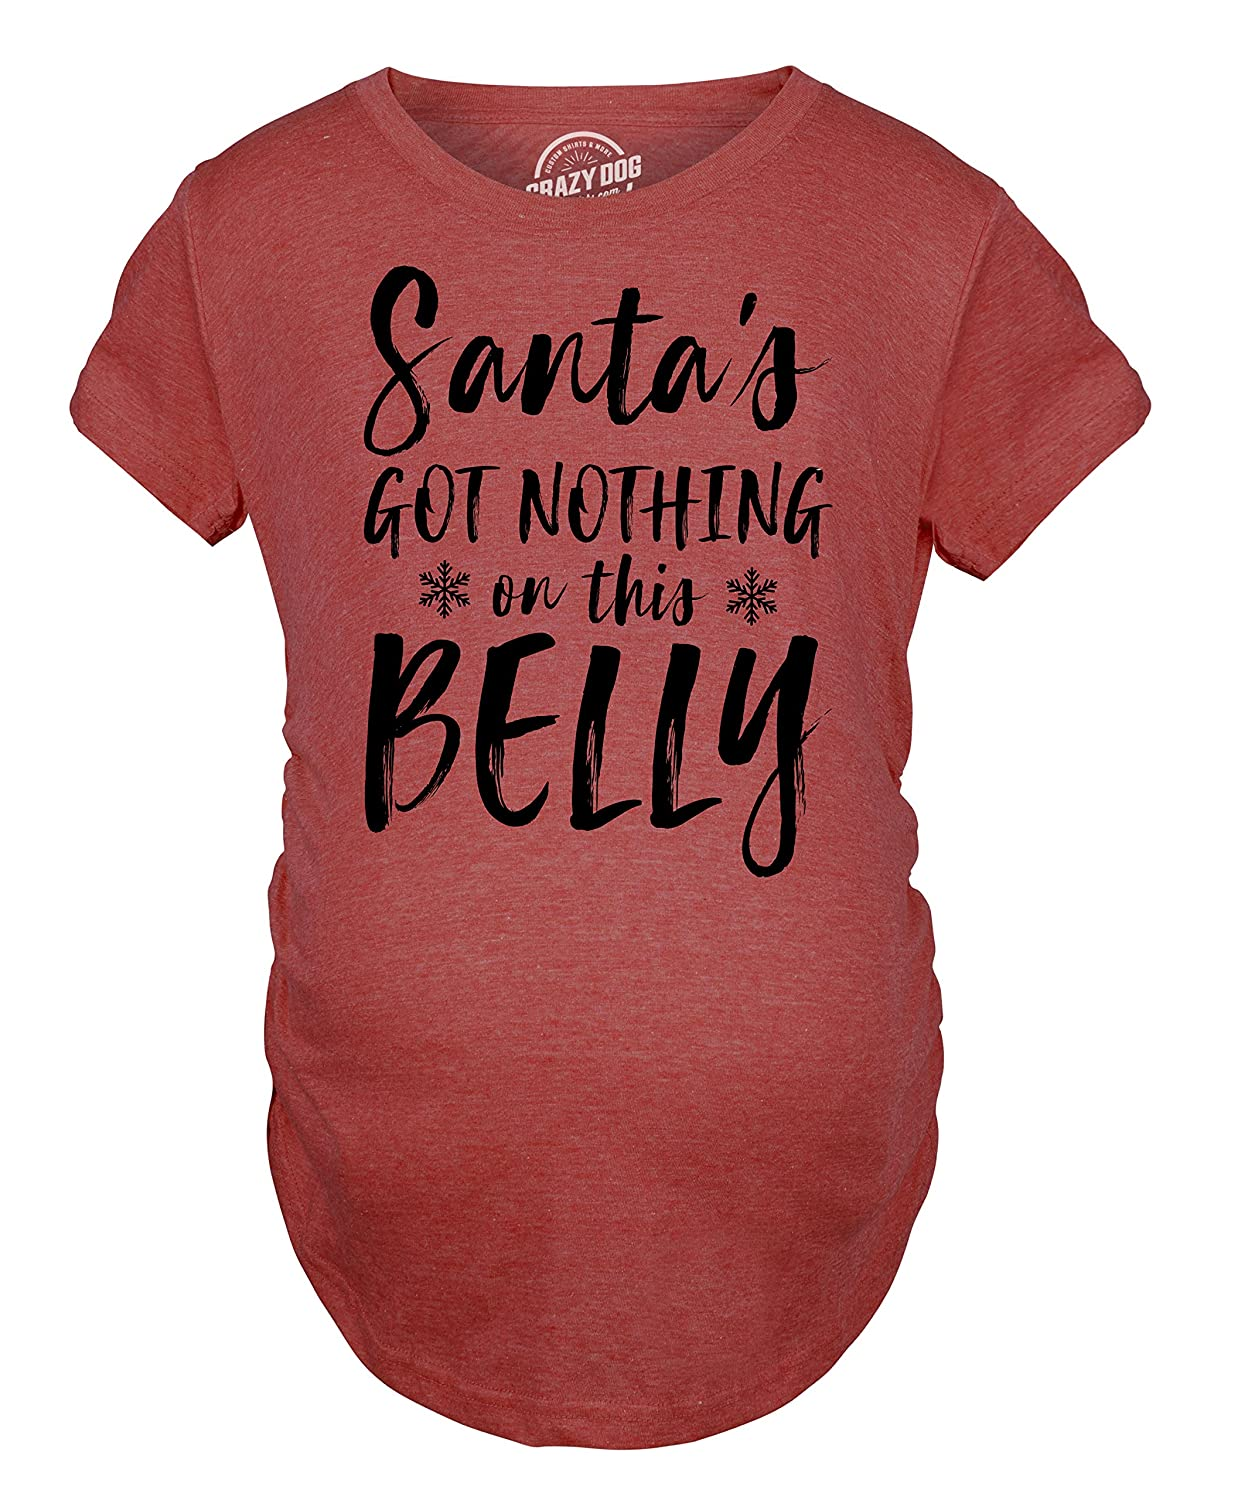 Maternity Santas Got Nothing On This Belly Pregnancy Tshirt Funny Christmas Bump Tee Crazy Dog Tshirts